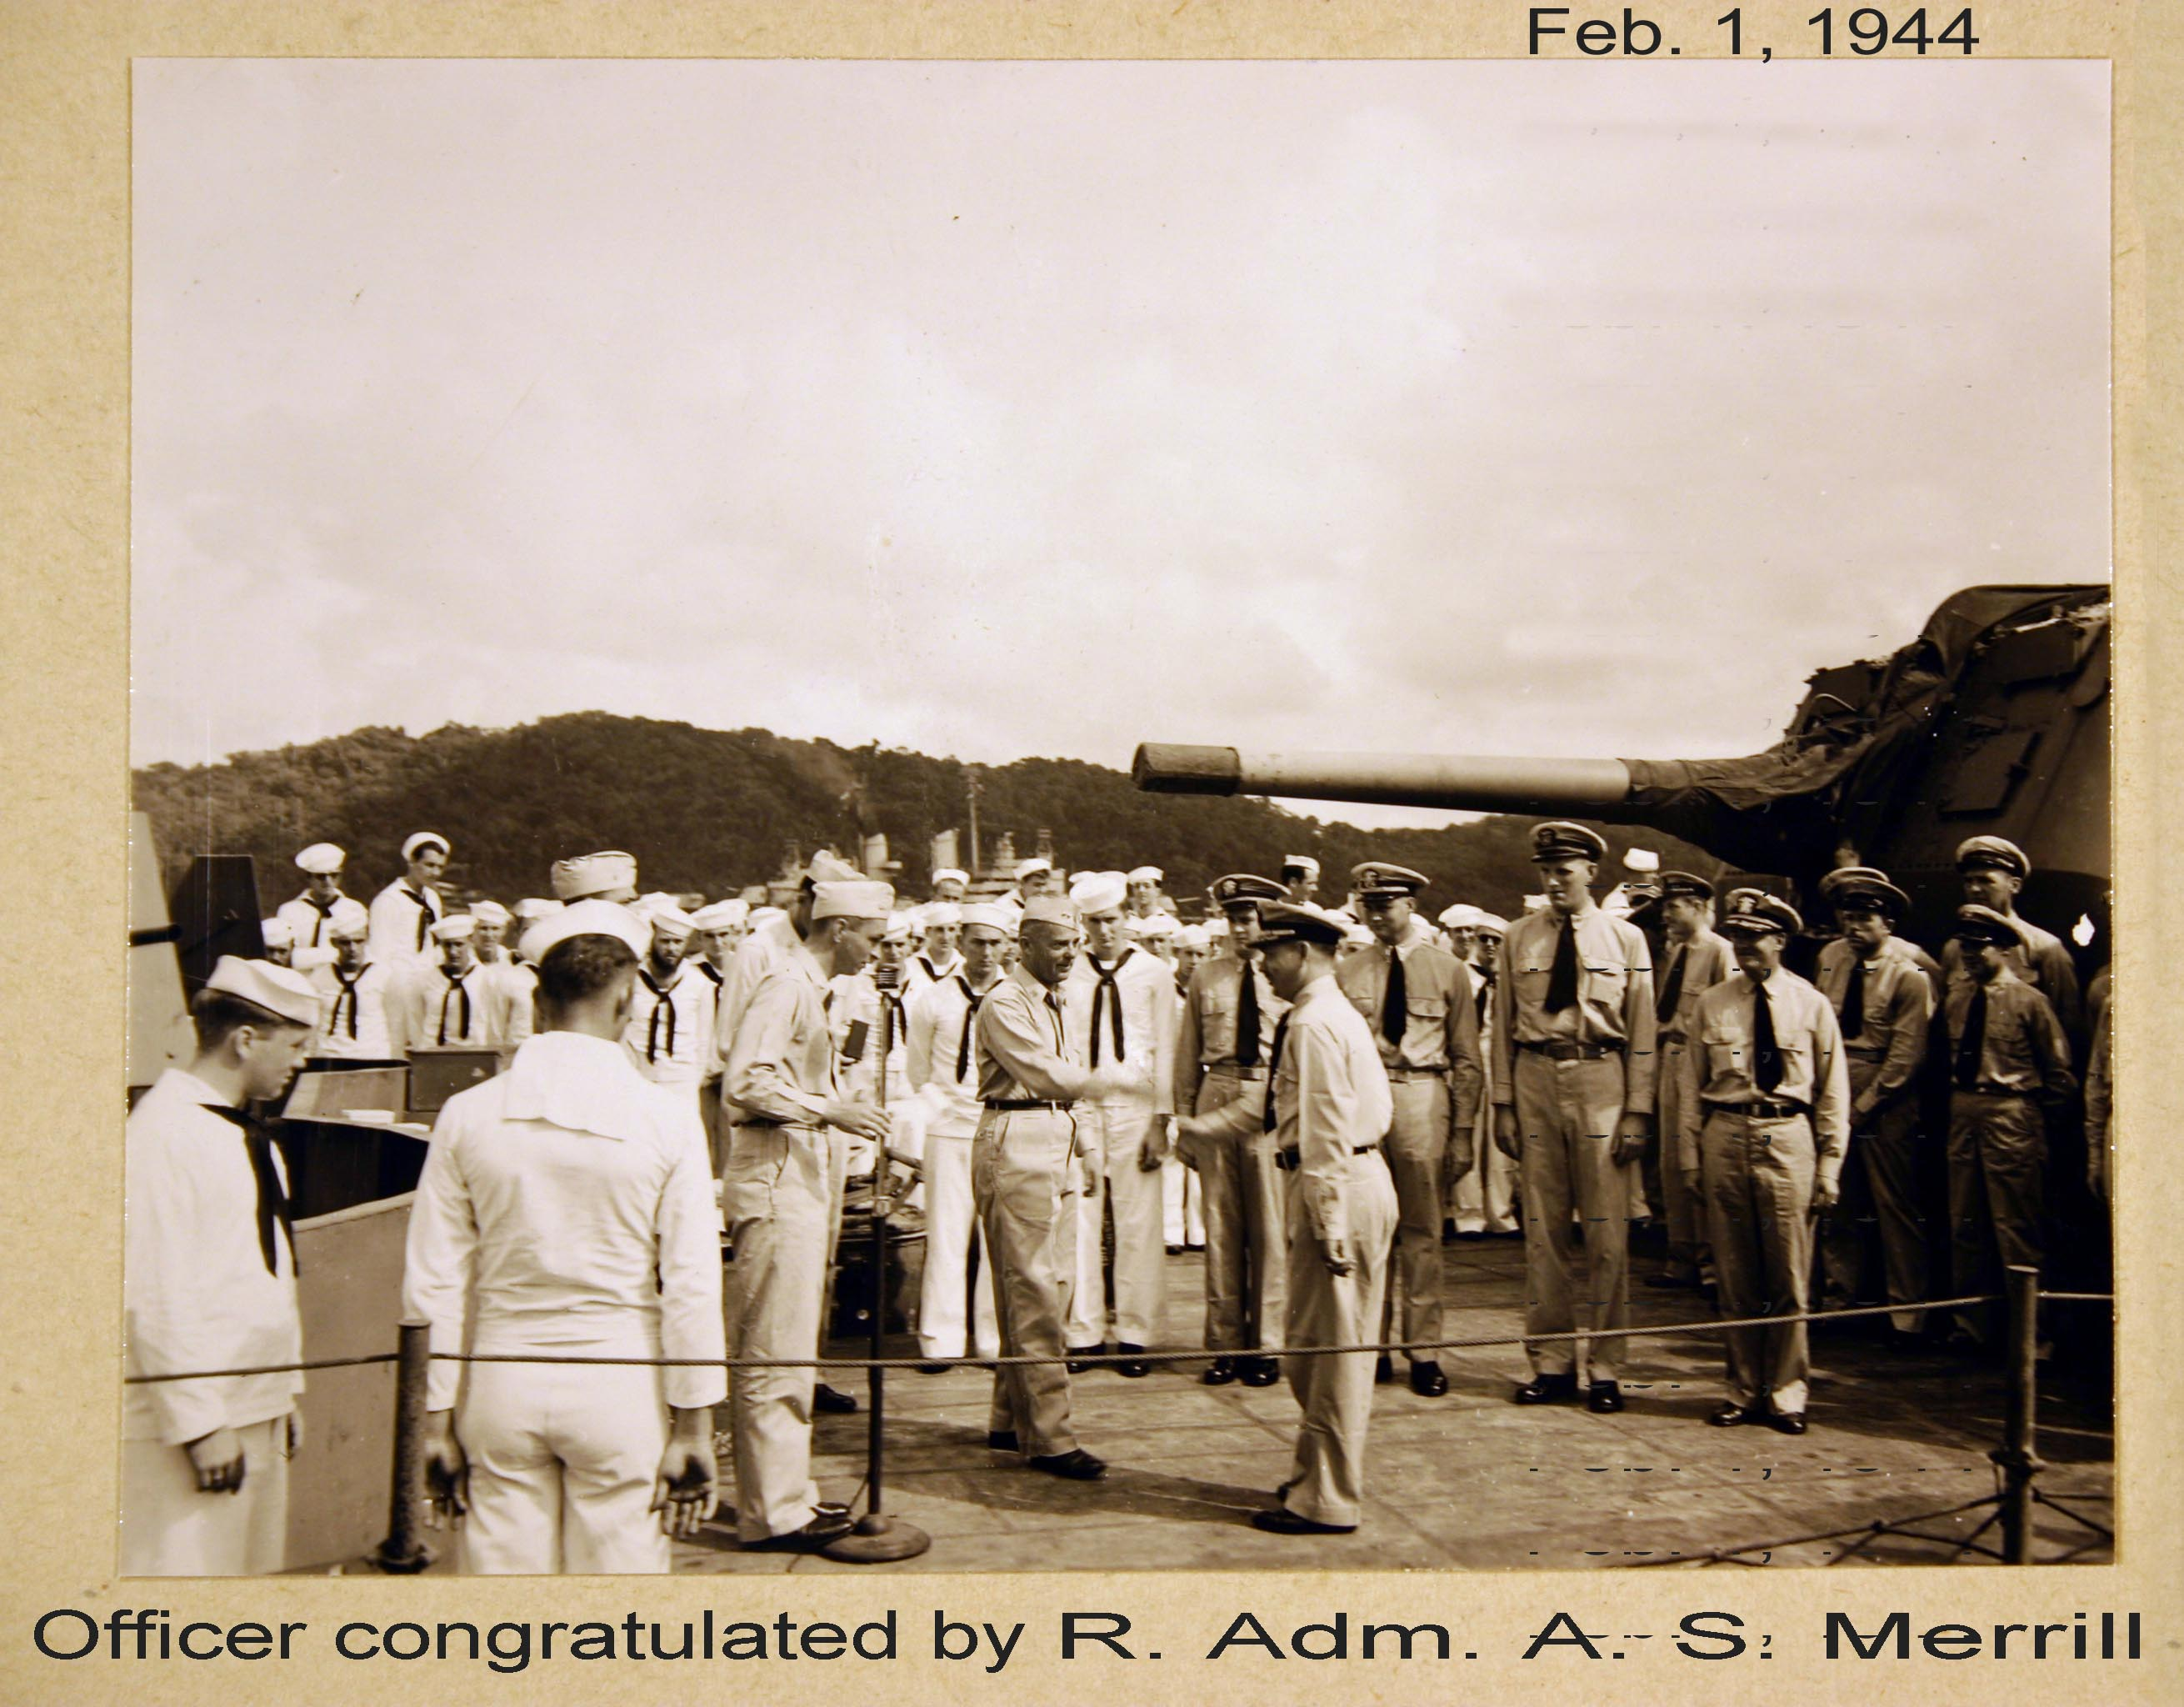 Picture of Officers being congratulated Feb. 1, 1944